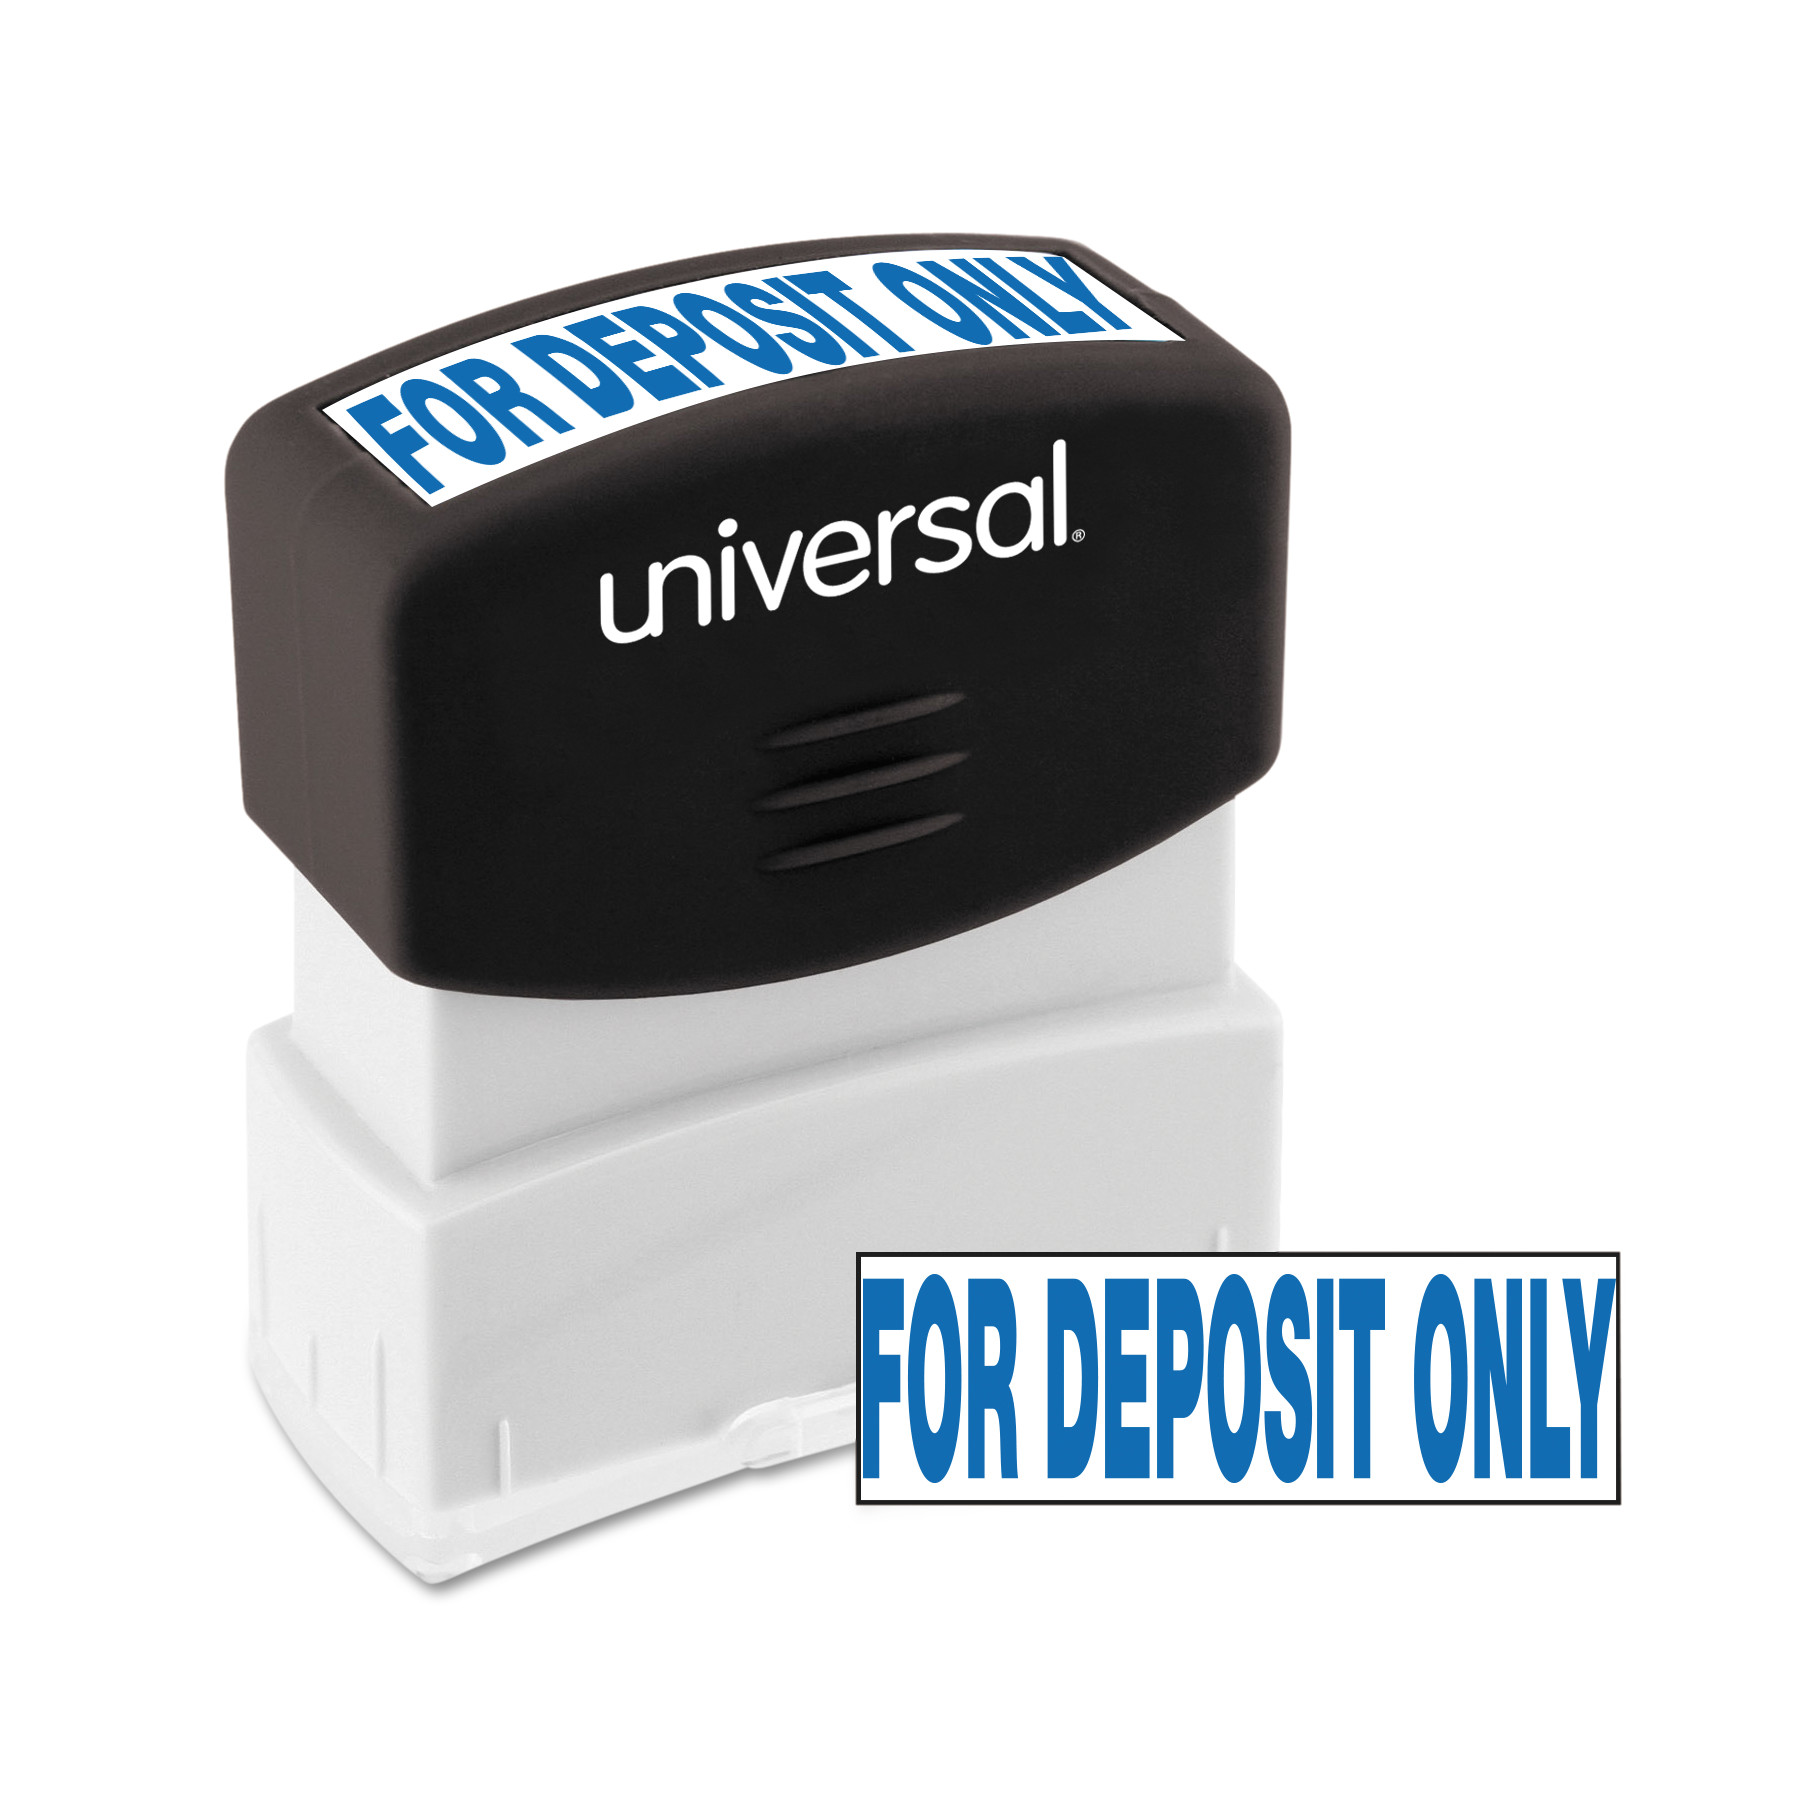 Universal Message Stamp, for DEPOSIT ONLY, Pre-Inked One-Color, Blue